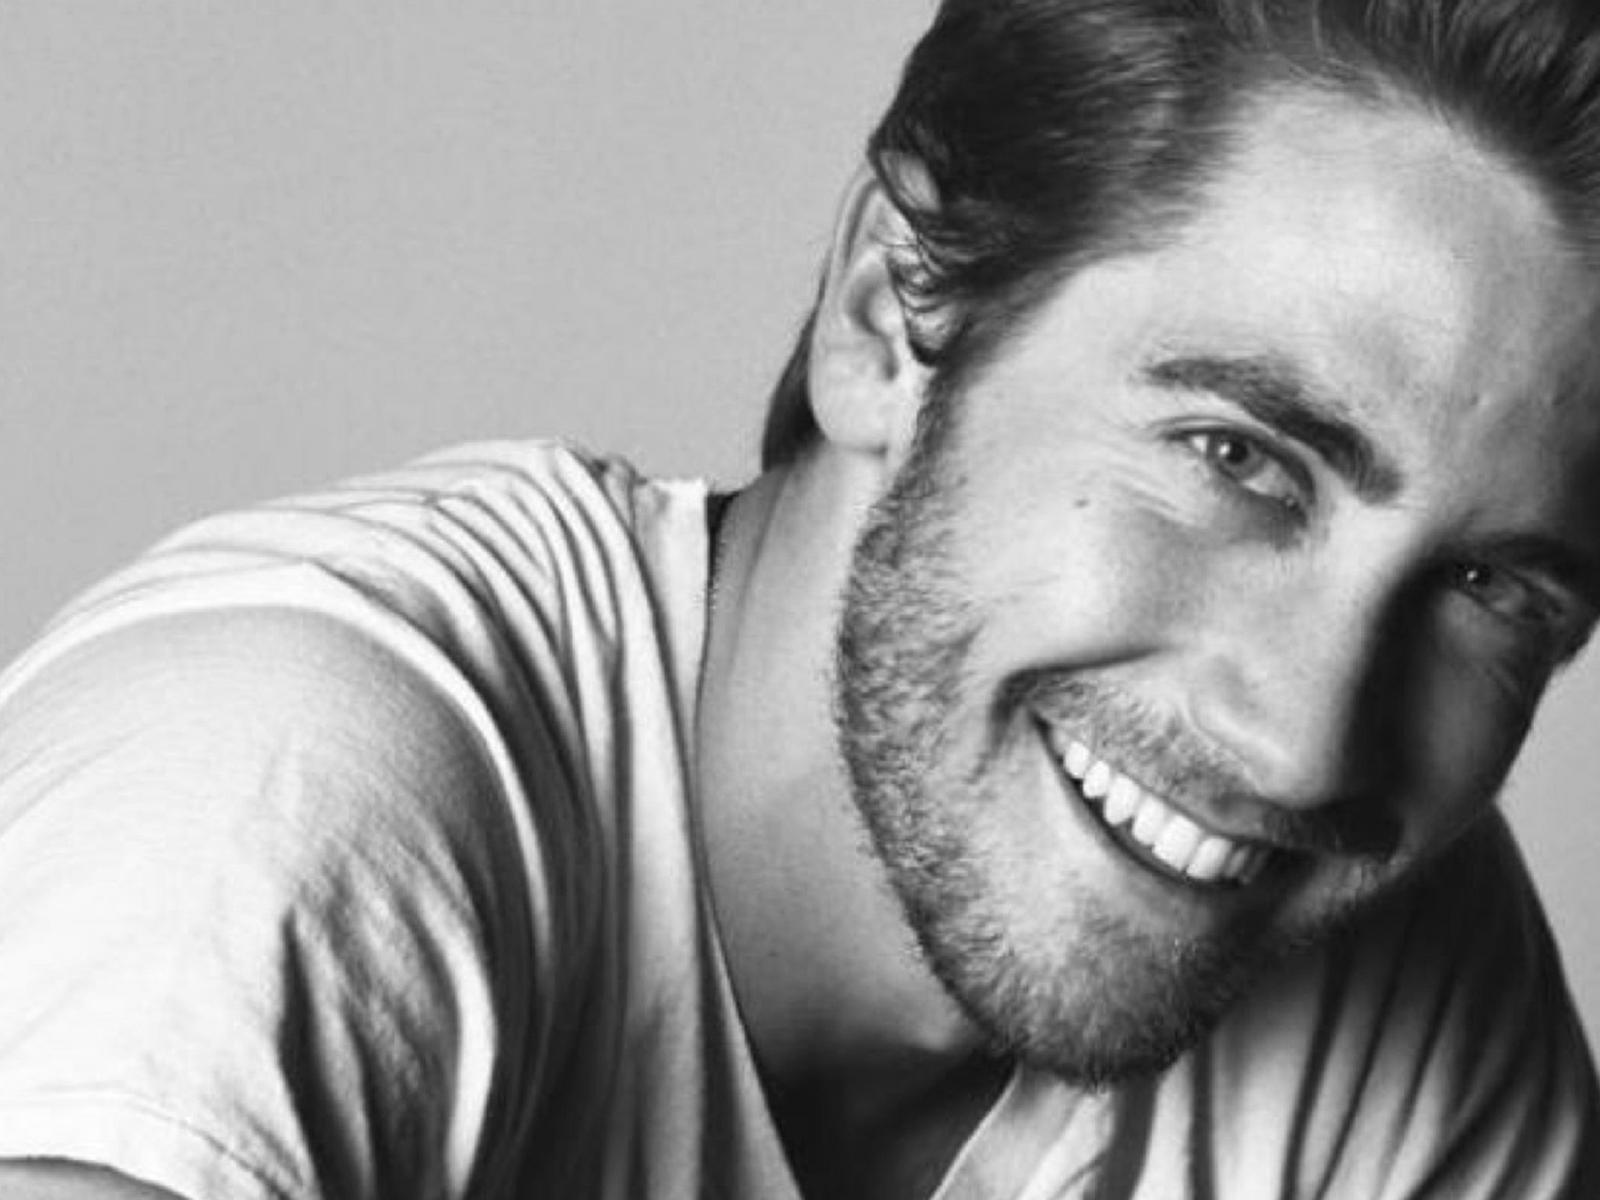 Jake Gyllenhaal Wallpaper 5   2560 X 1320 stmednet 1600x1200